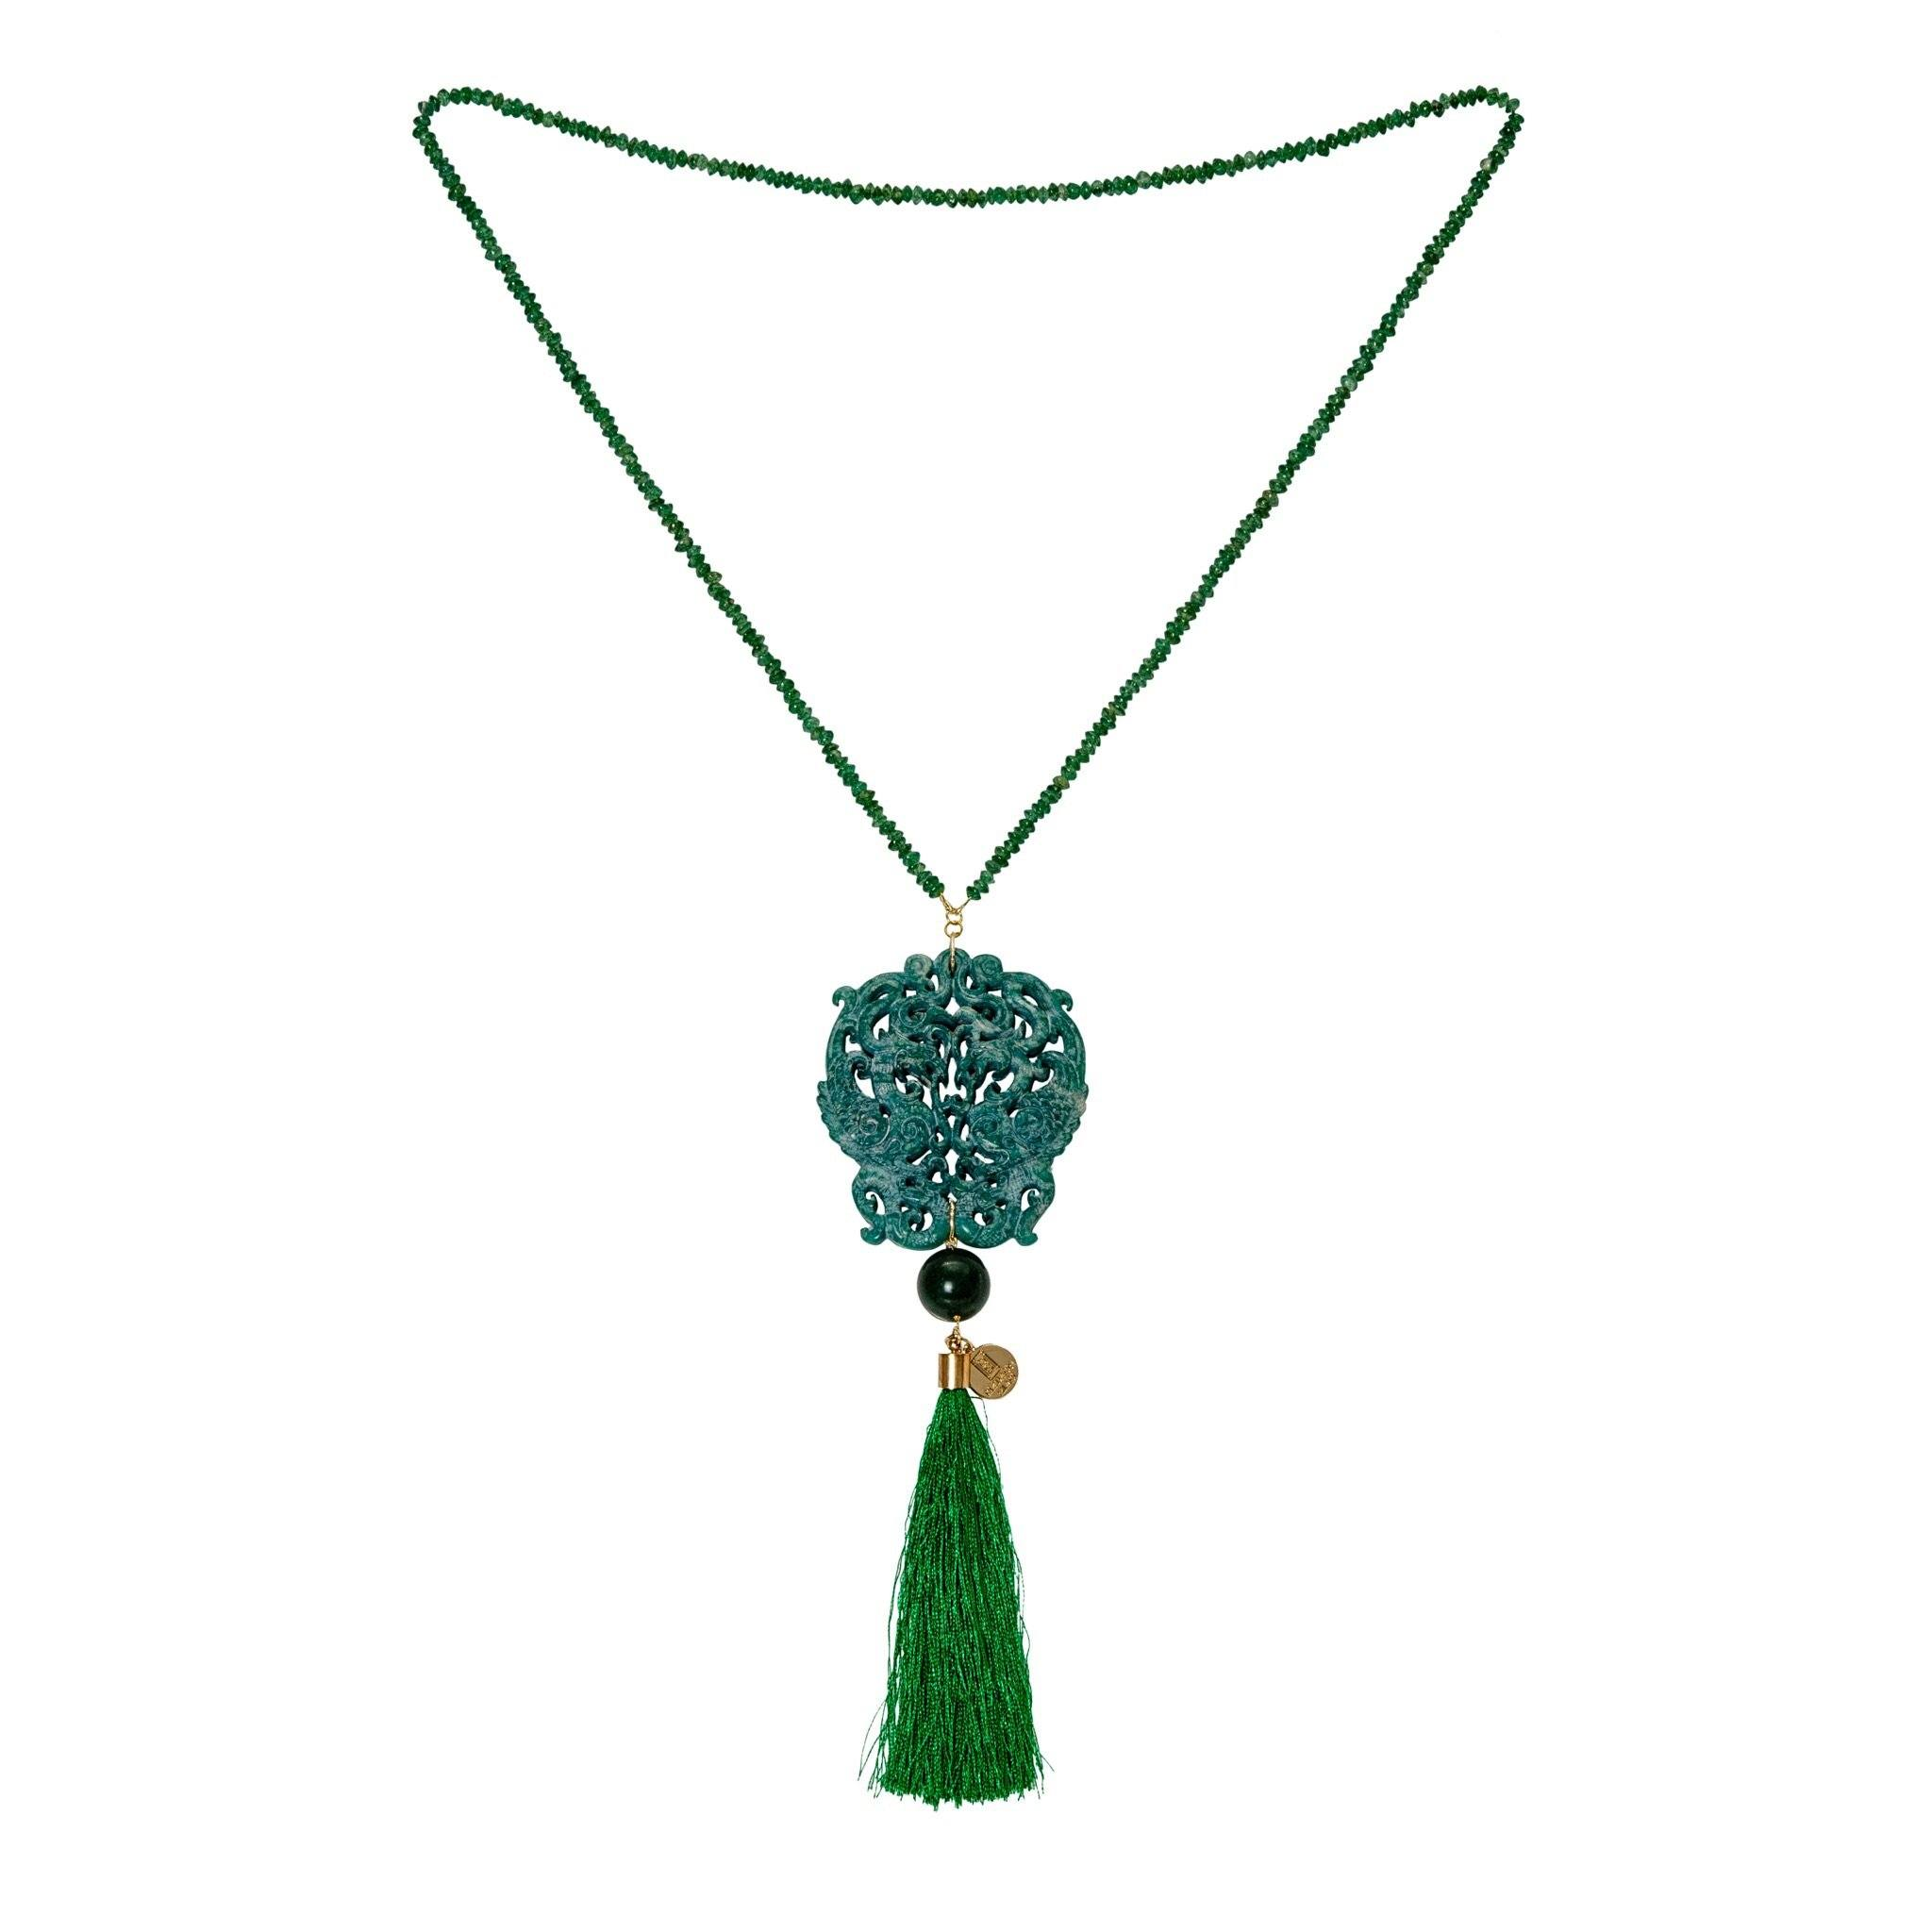 HONG KONG green onyx necklace